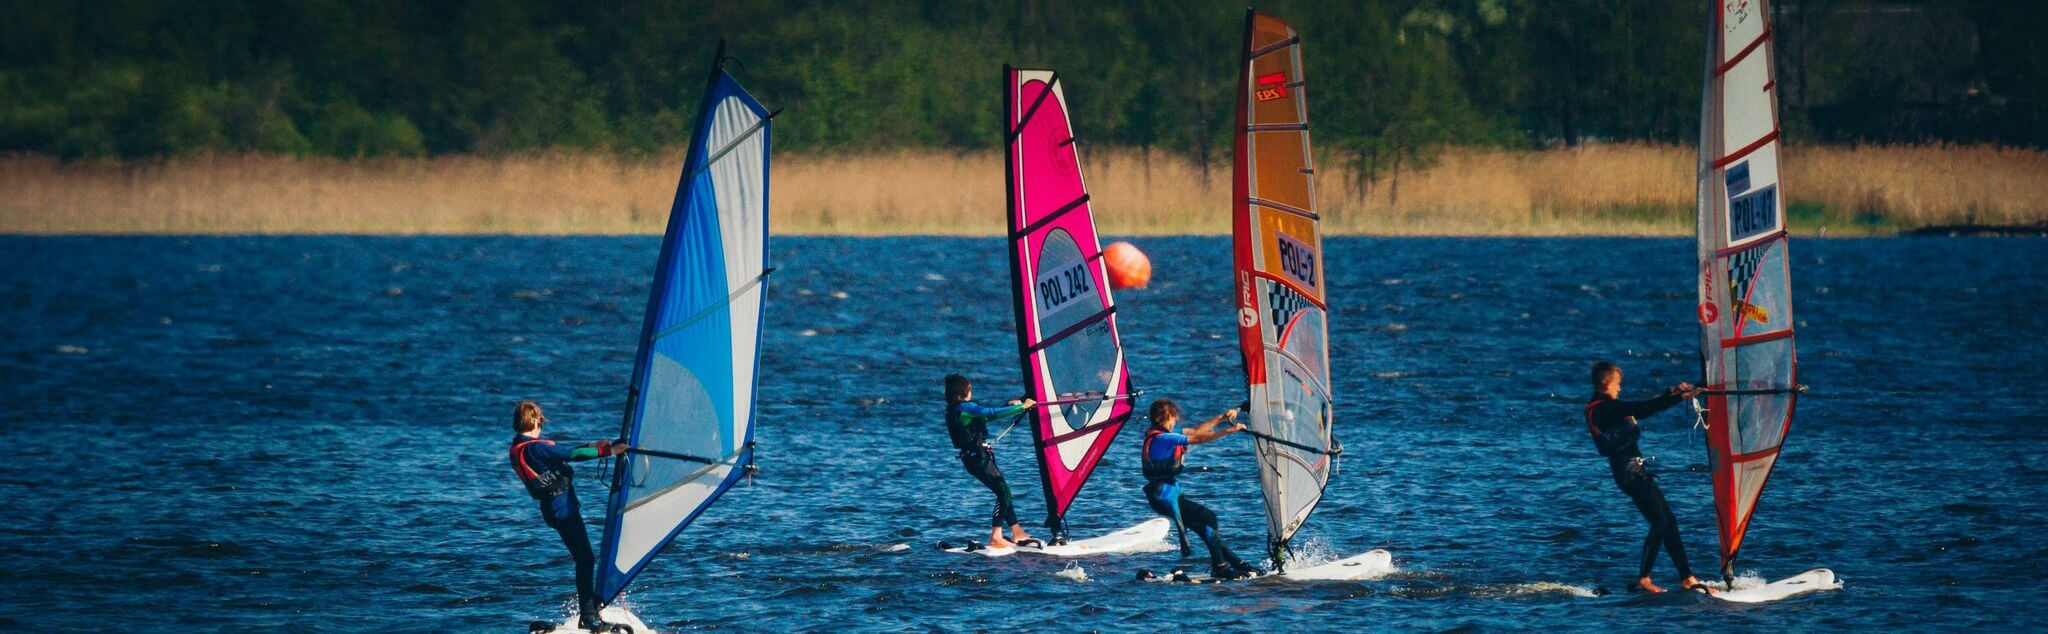 Windsurfing in West Lothian